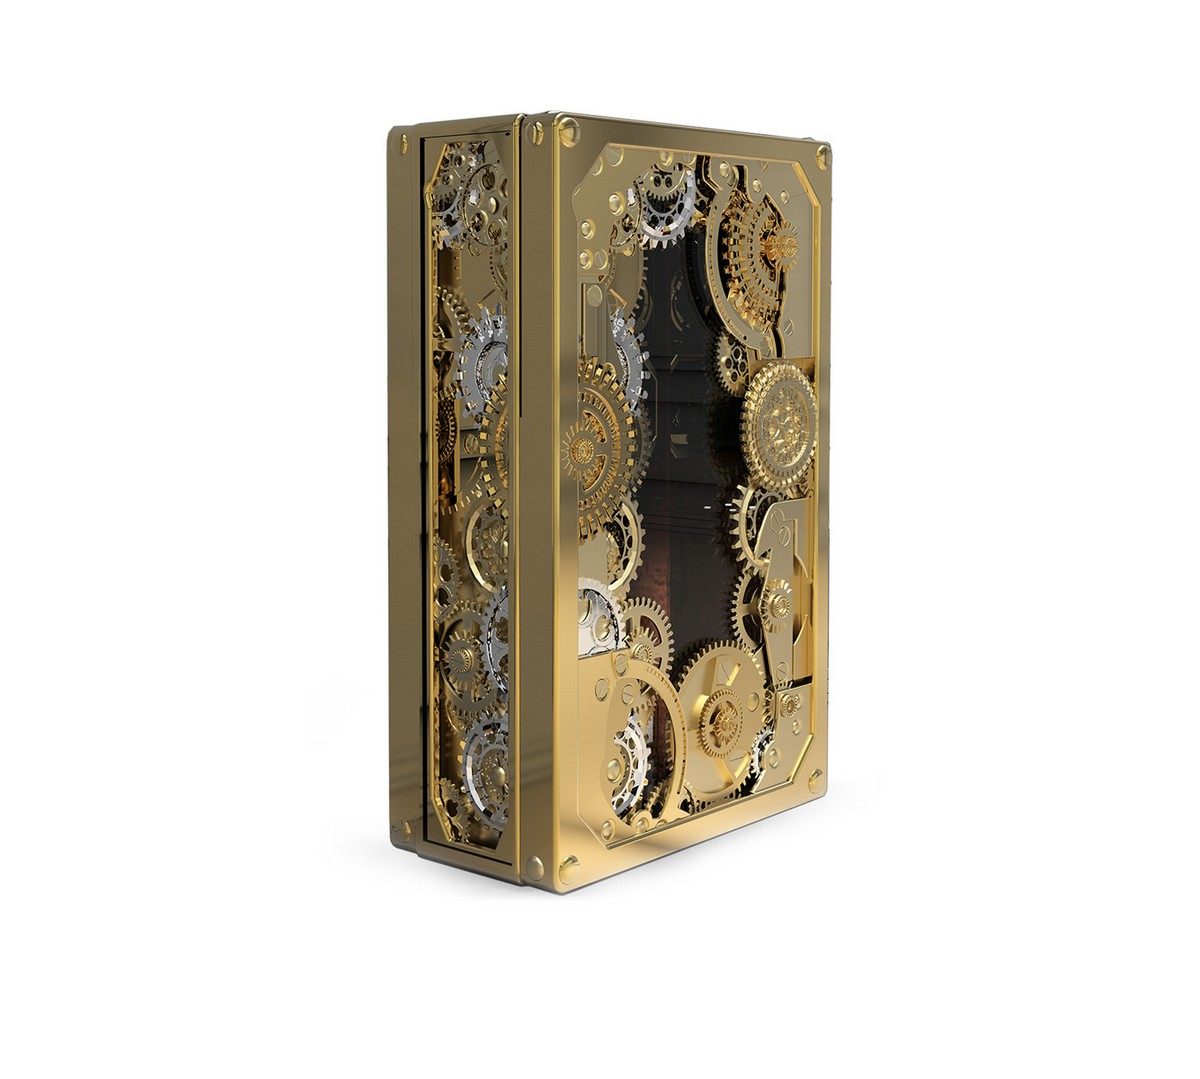 Dazzling Luxury Safes By Boca Do Lobo luxury safes Dazzling Luxury Safes By Boca Do Lobo baron2